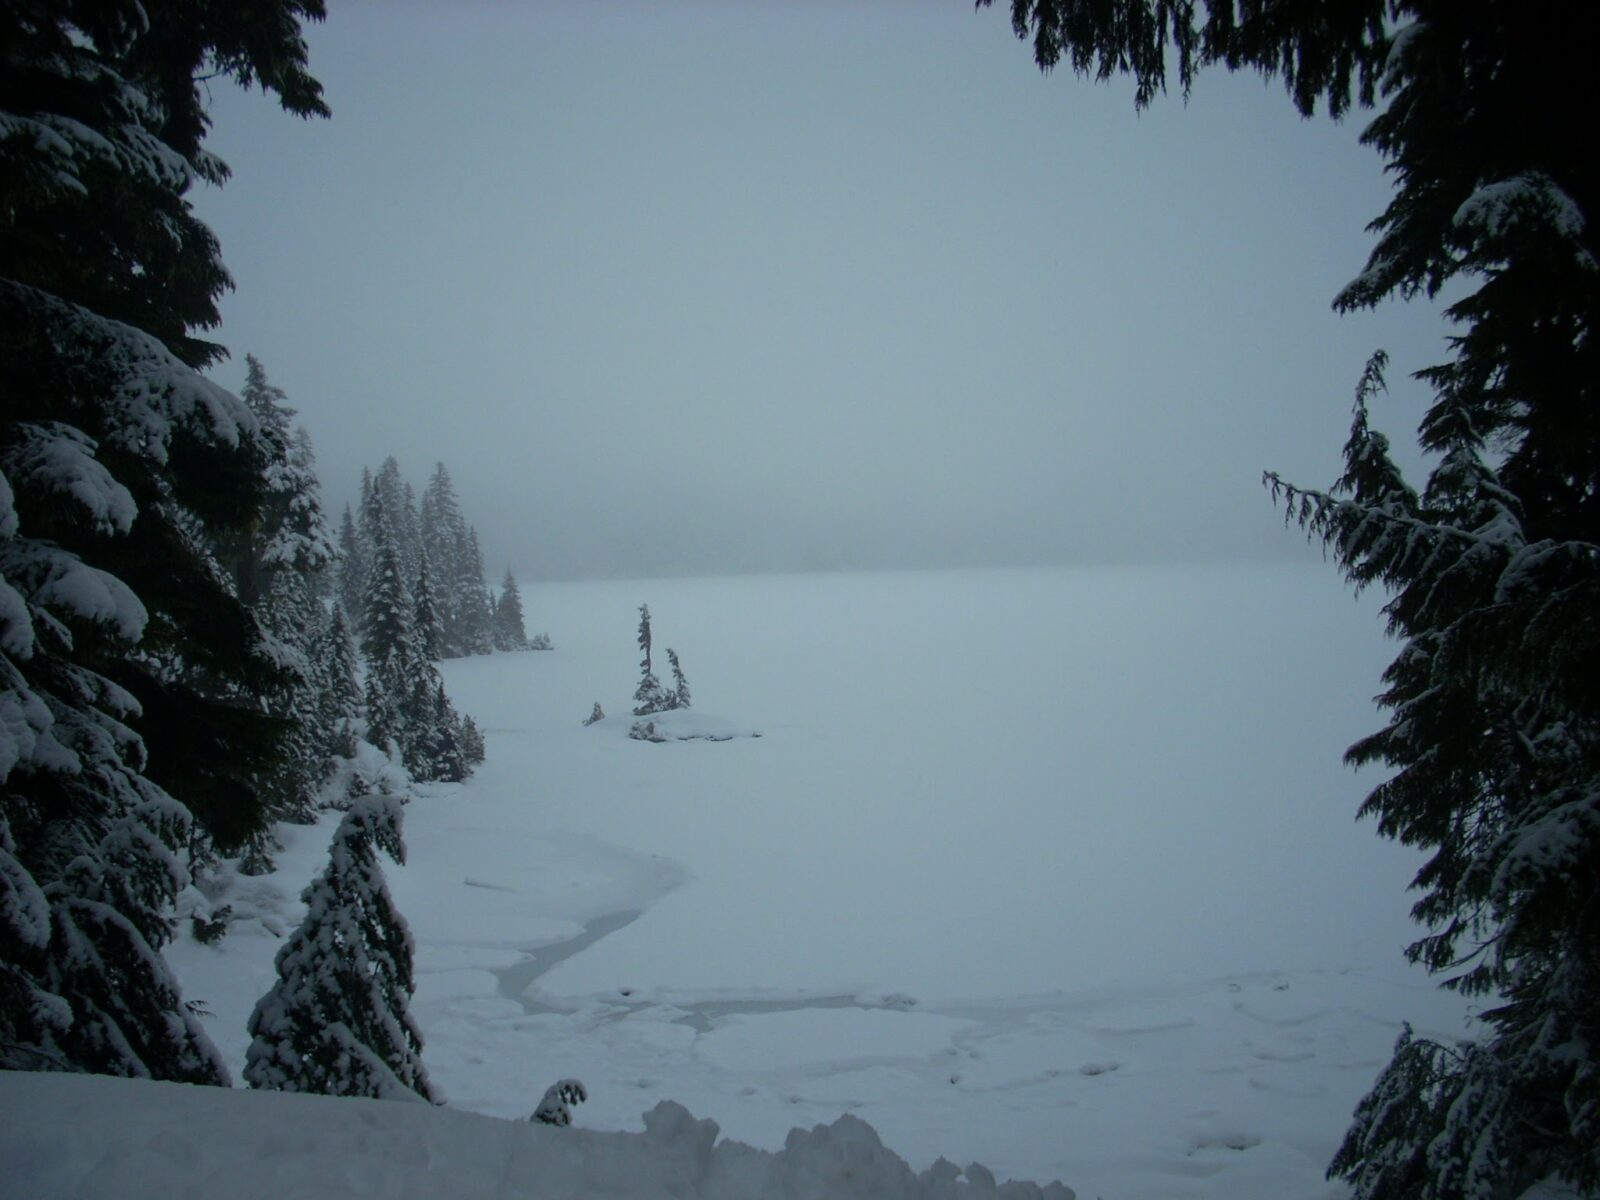 Frozen Mowich Lake in Mt Rainier National Park on a dark and foggy day. The lake is framed by evergreen trees covered in snow.